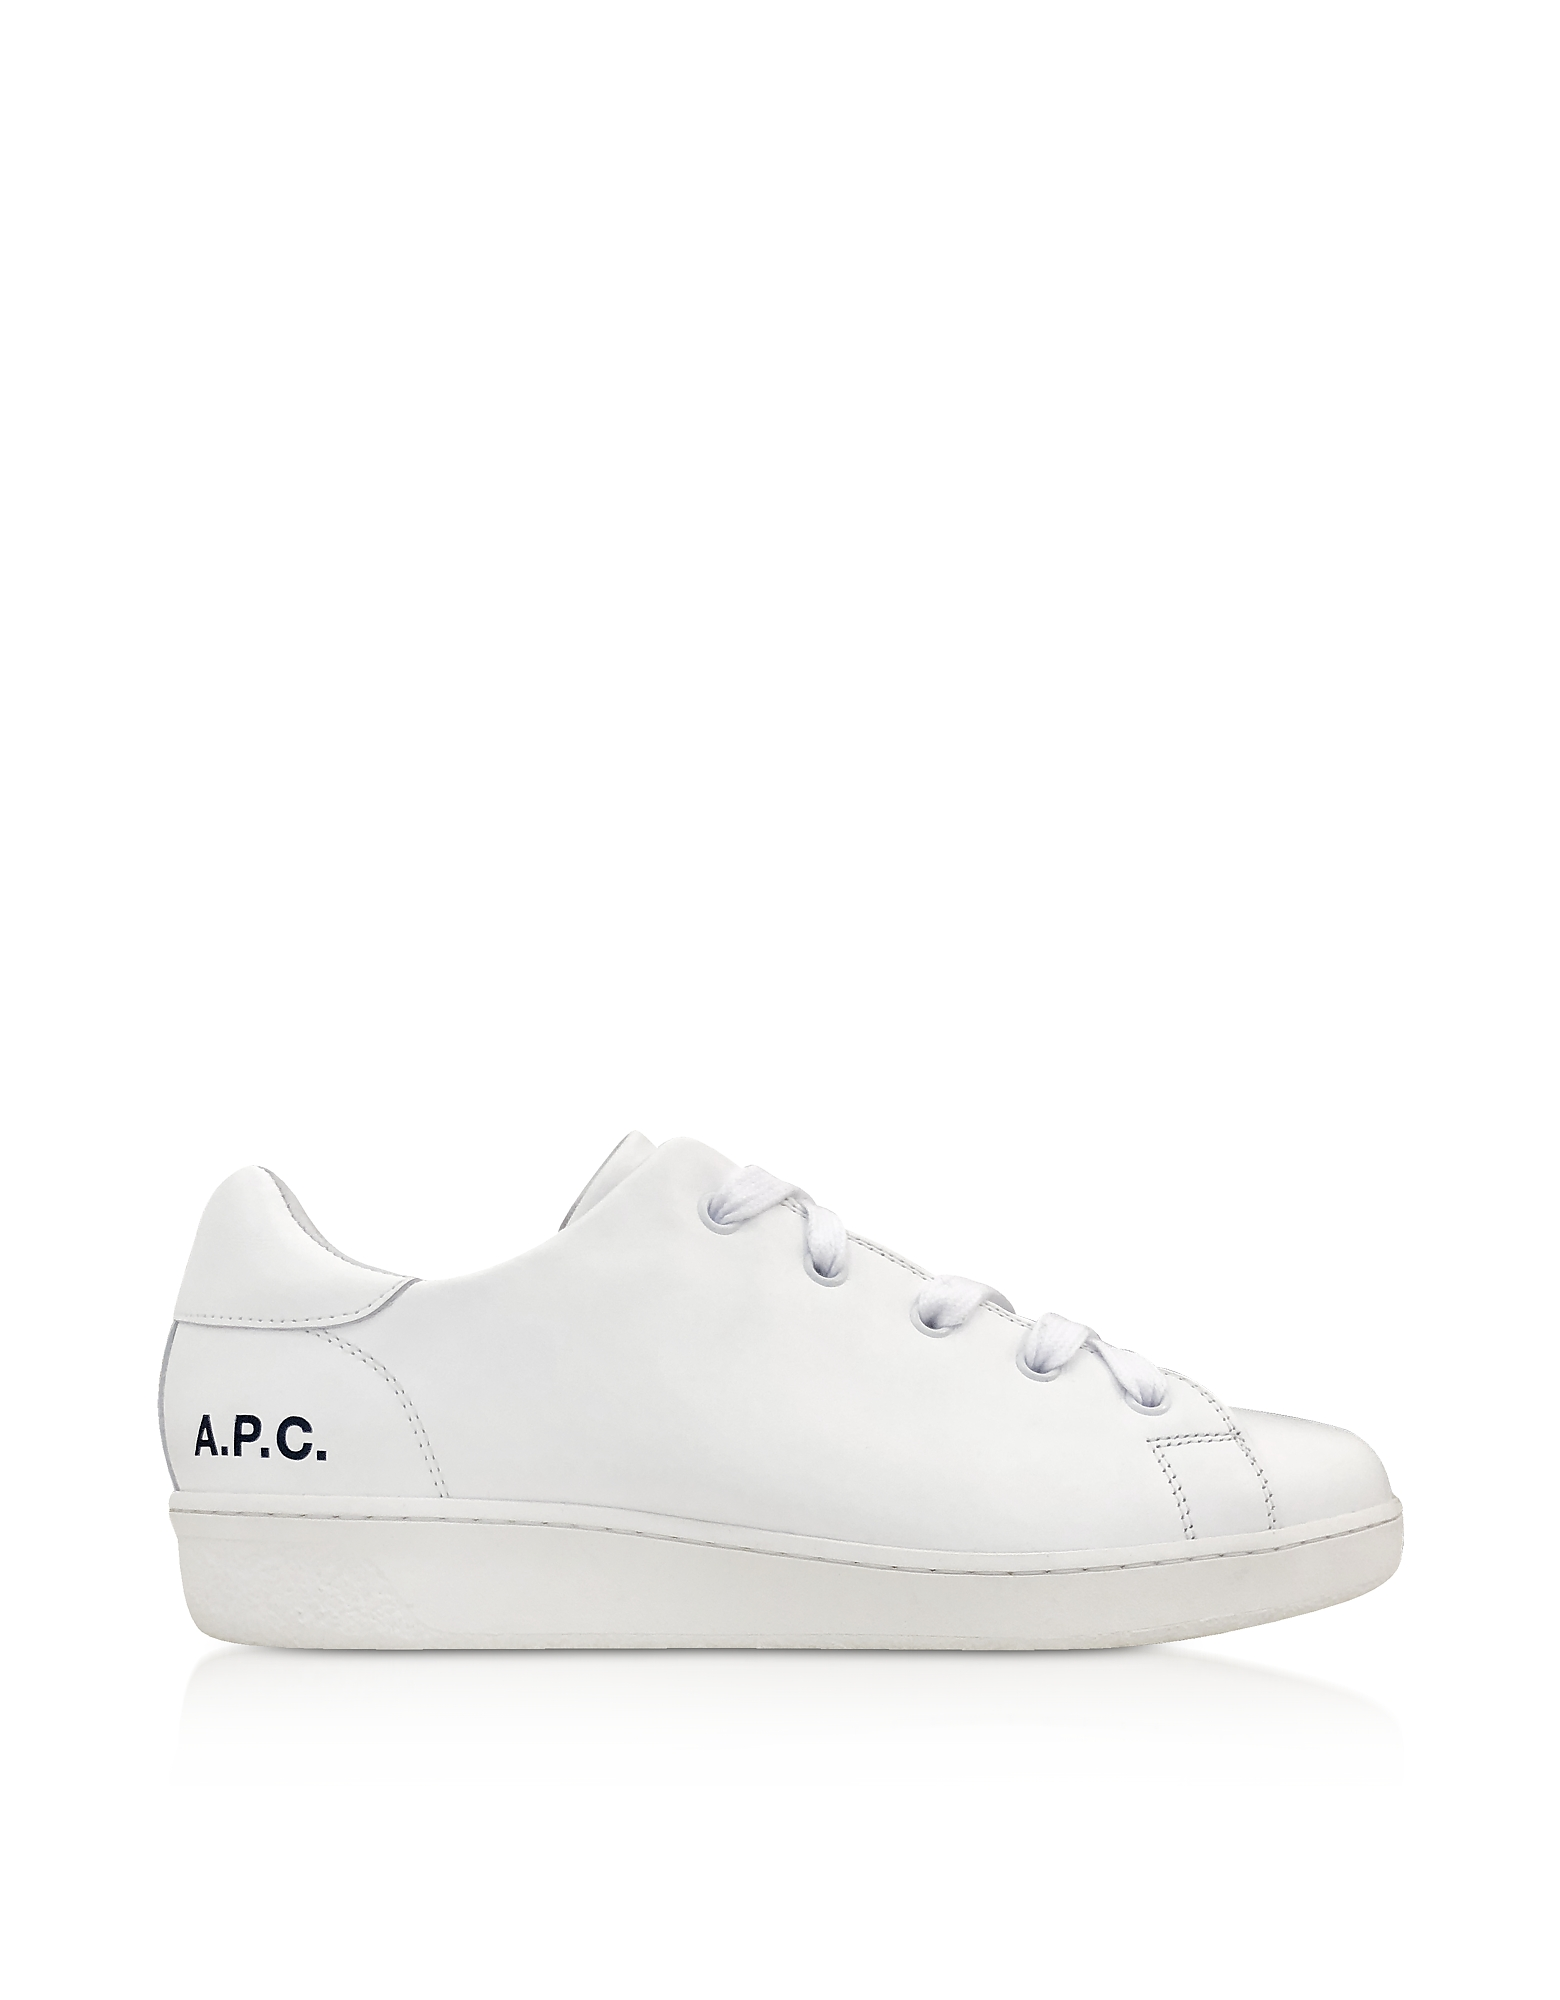 Minimal Tennis Sneakers Low Top da Uomo in Pelle Bianco Ottico